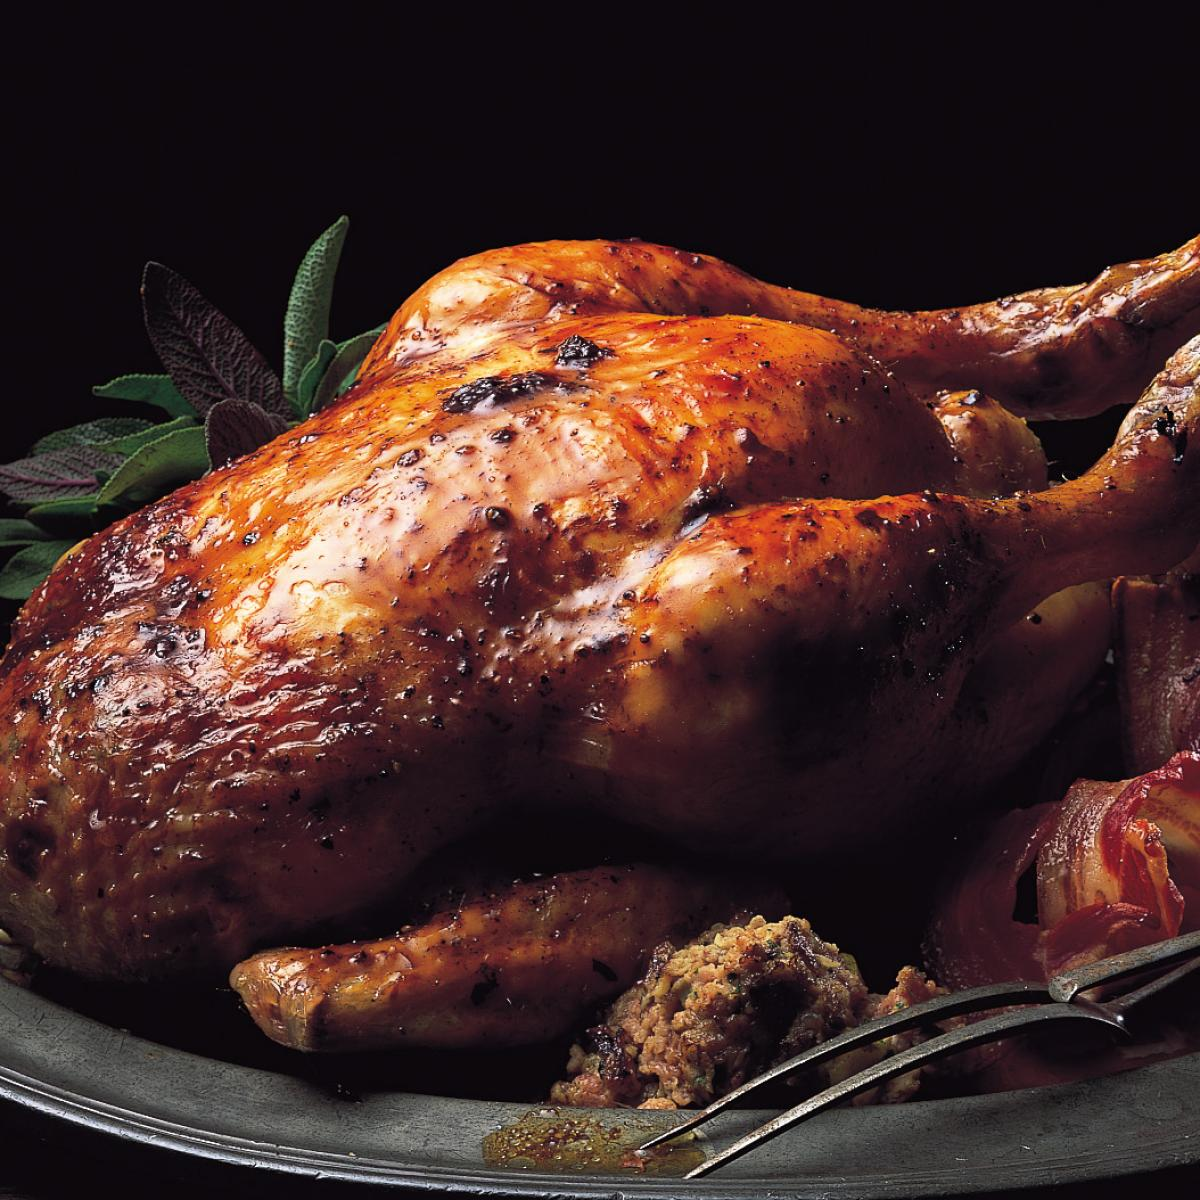 A picture of Delia's Chicken and other poultry how to cook guide